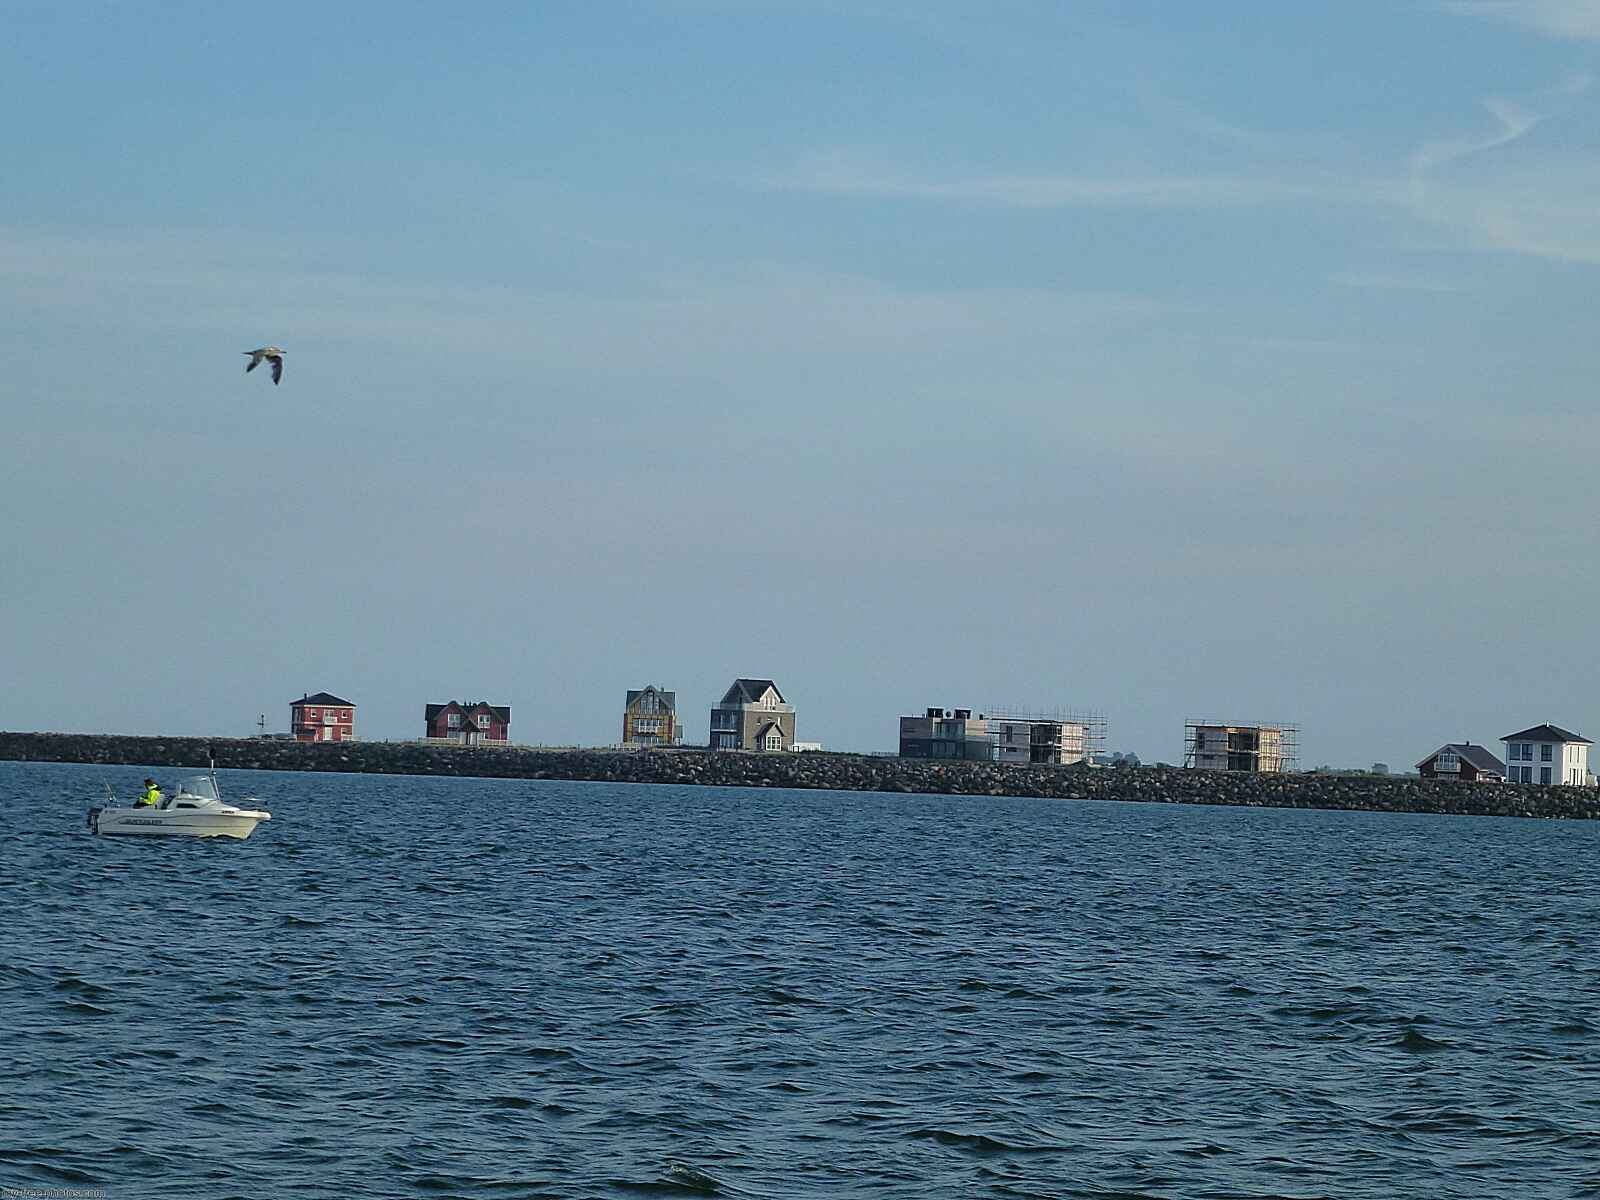 Eckernfoerde, Germany